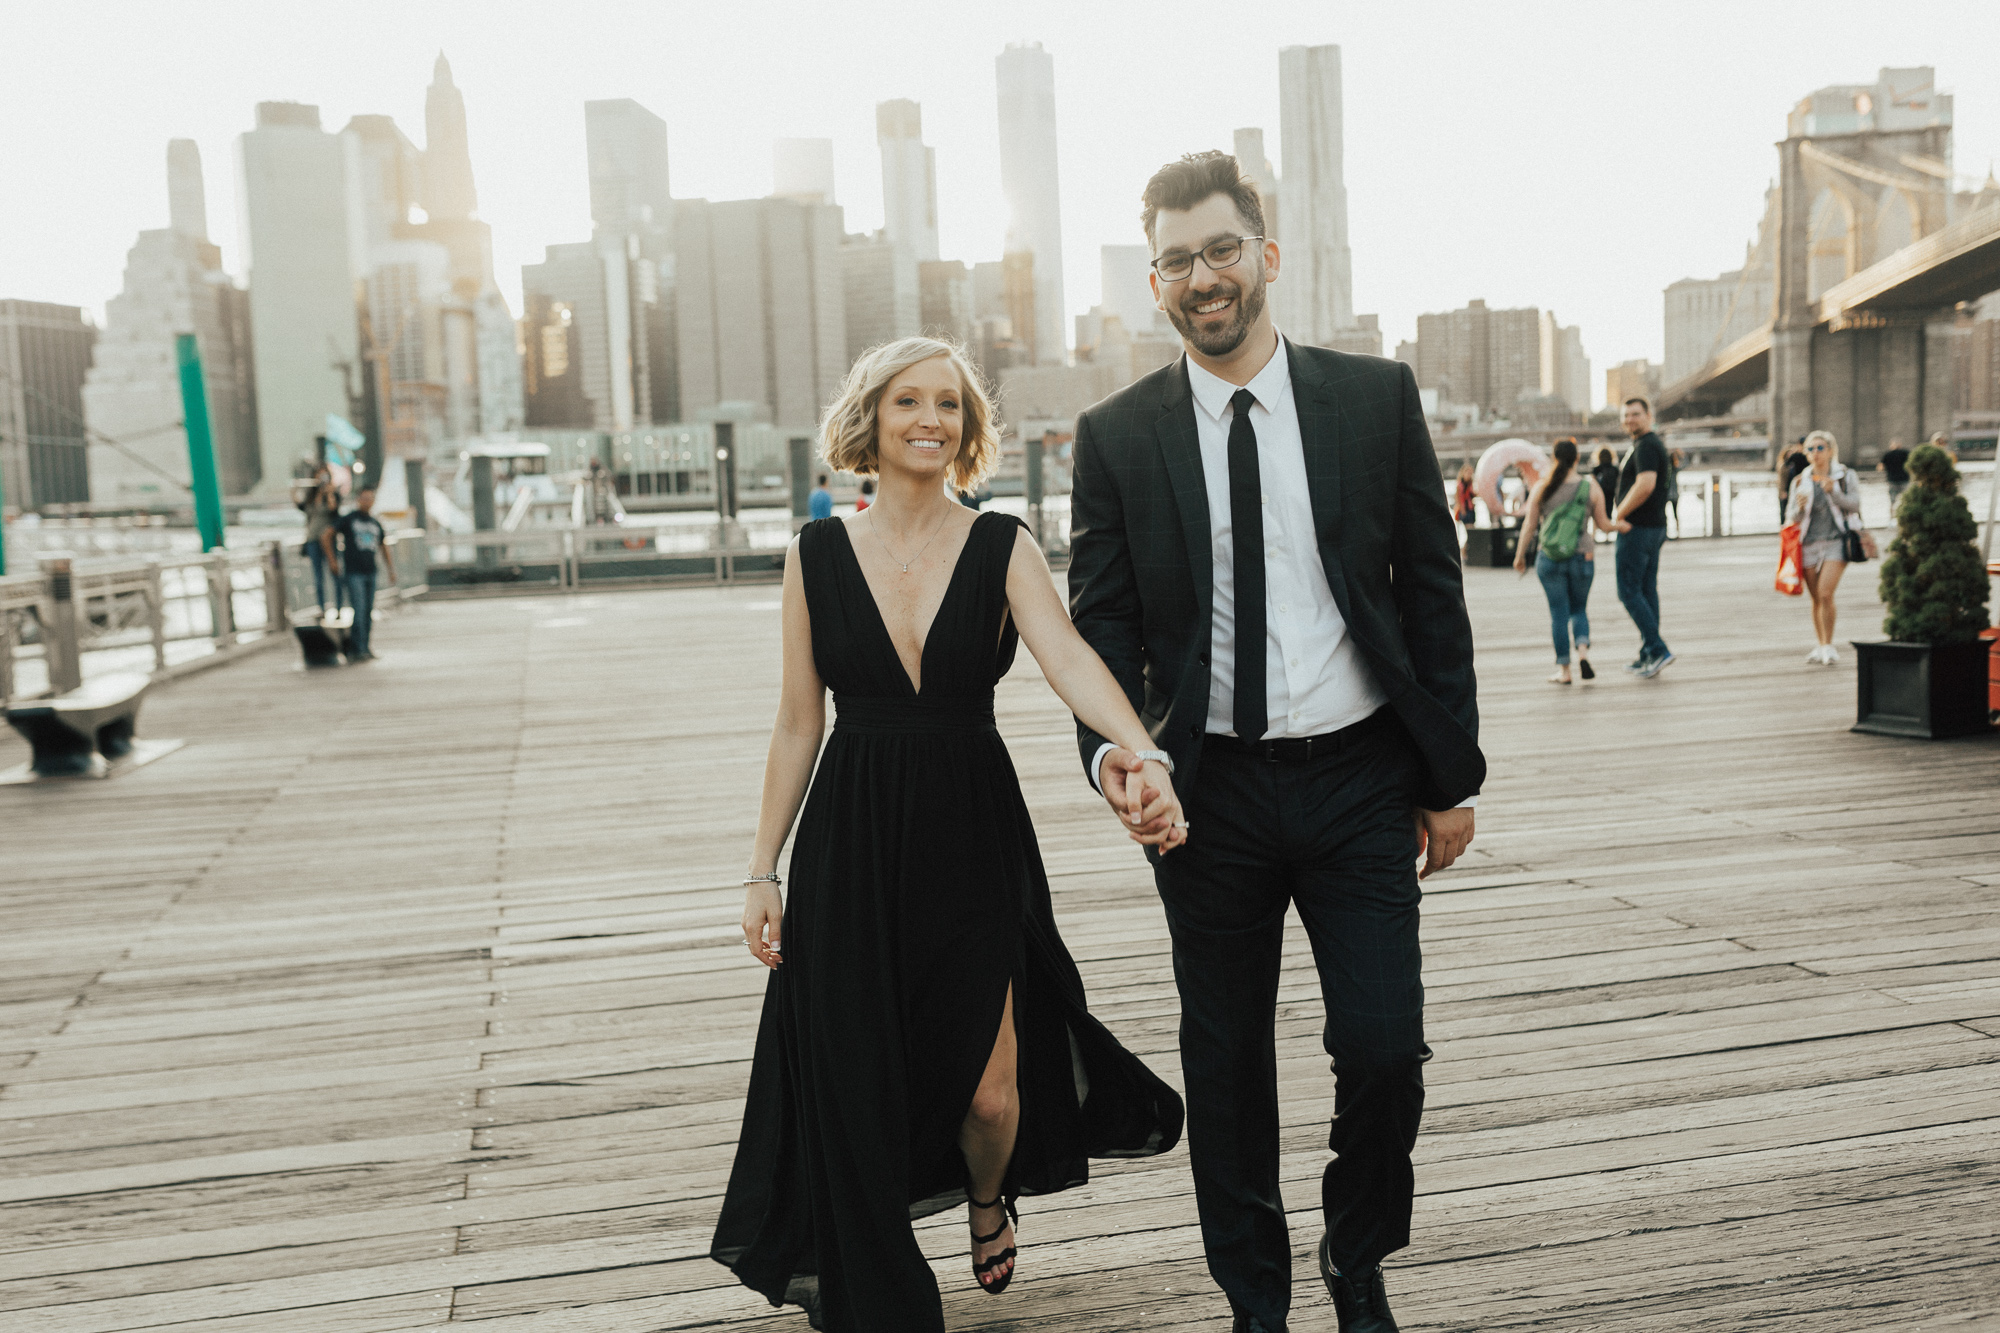 brooklyn_nyc_engagement_photography-51-of-83.jpg